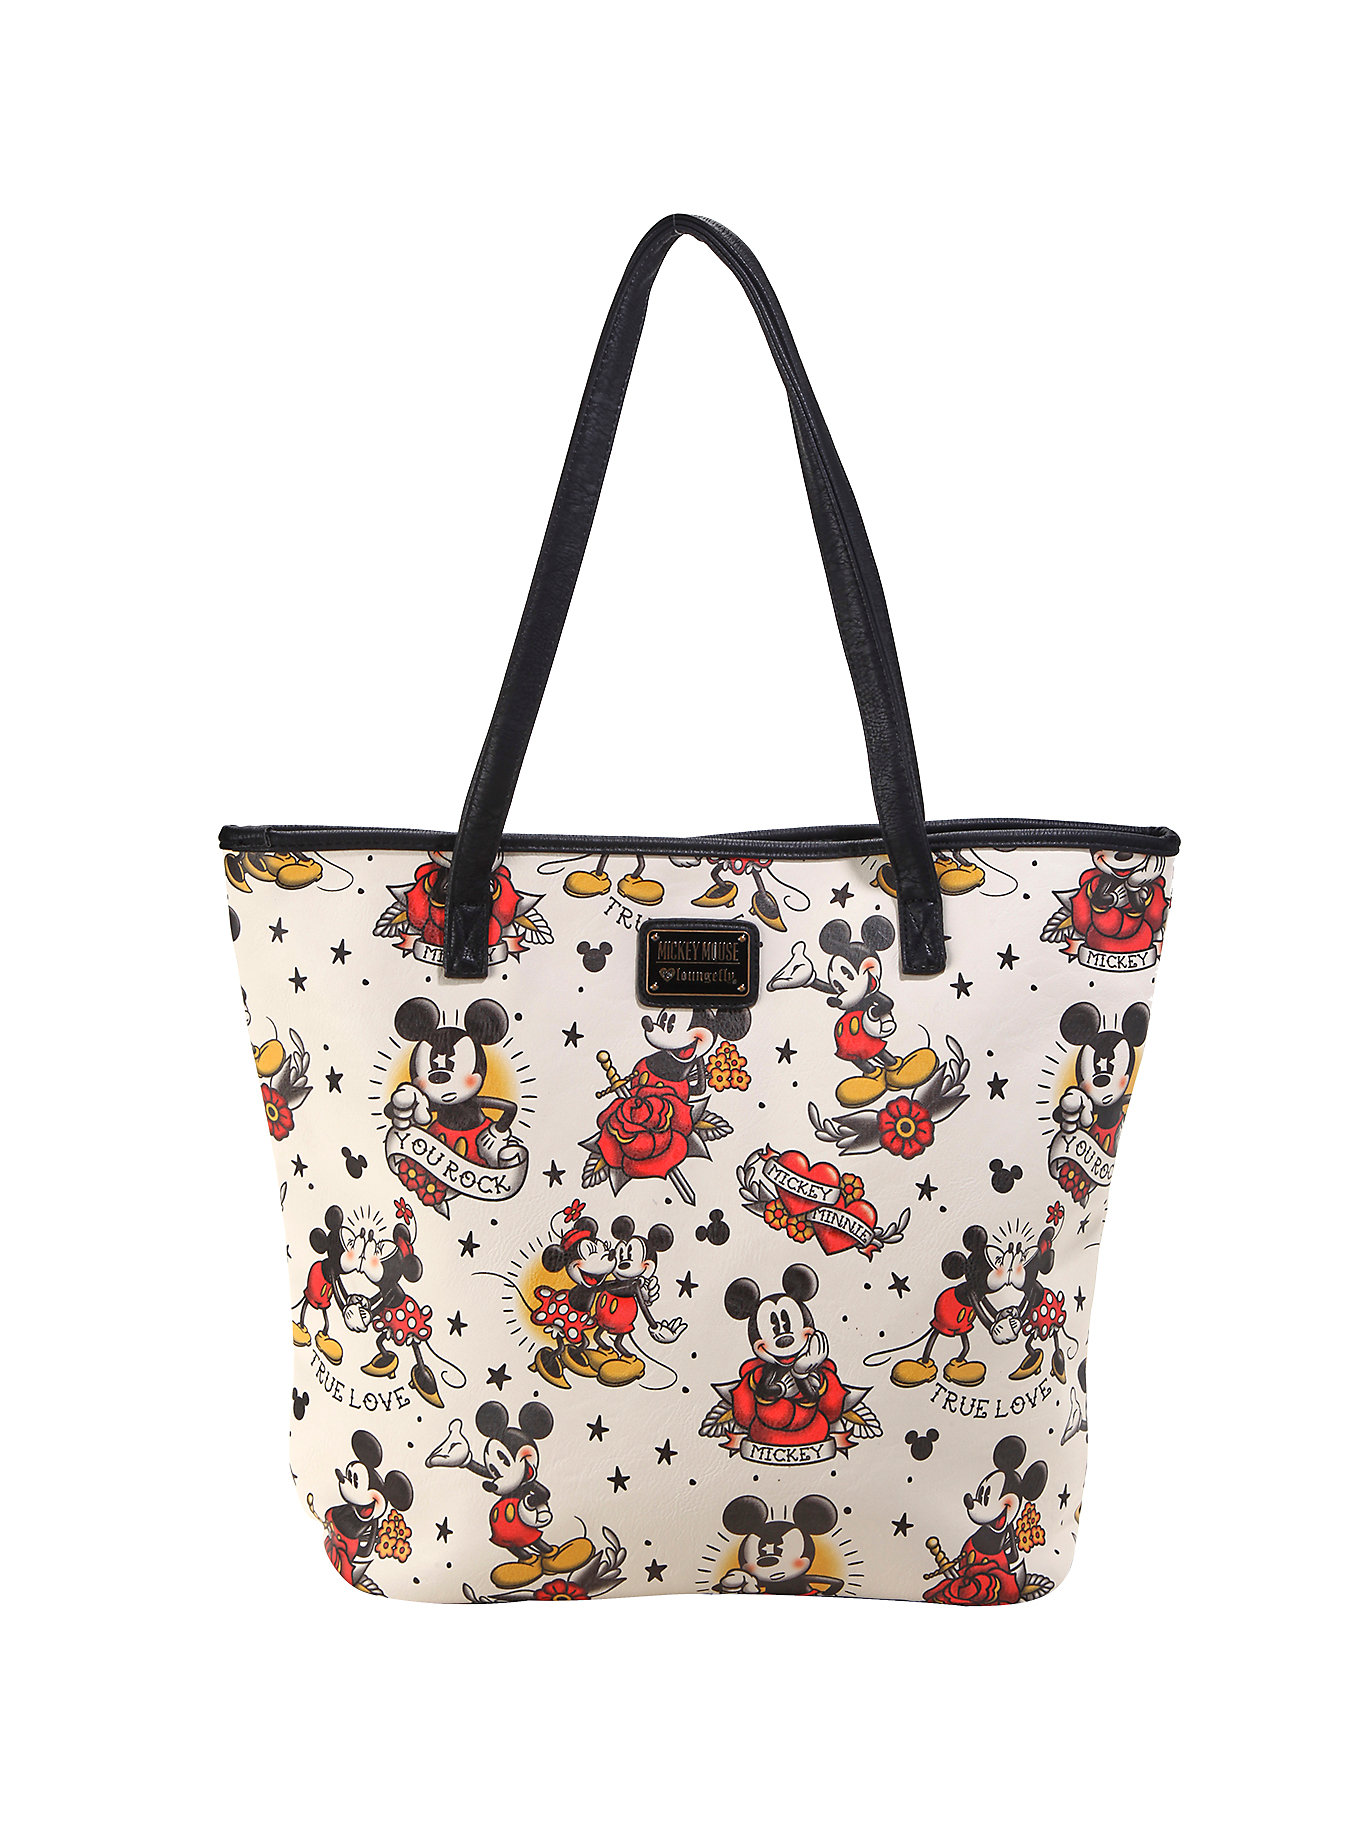 New Disney Clothing & Accessories for Women Online at Hot Topic!!!